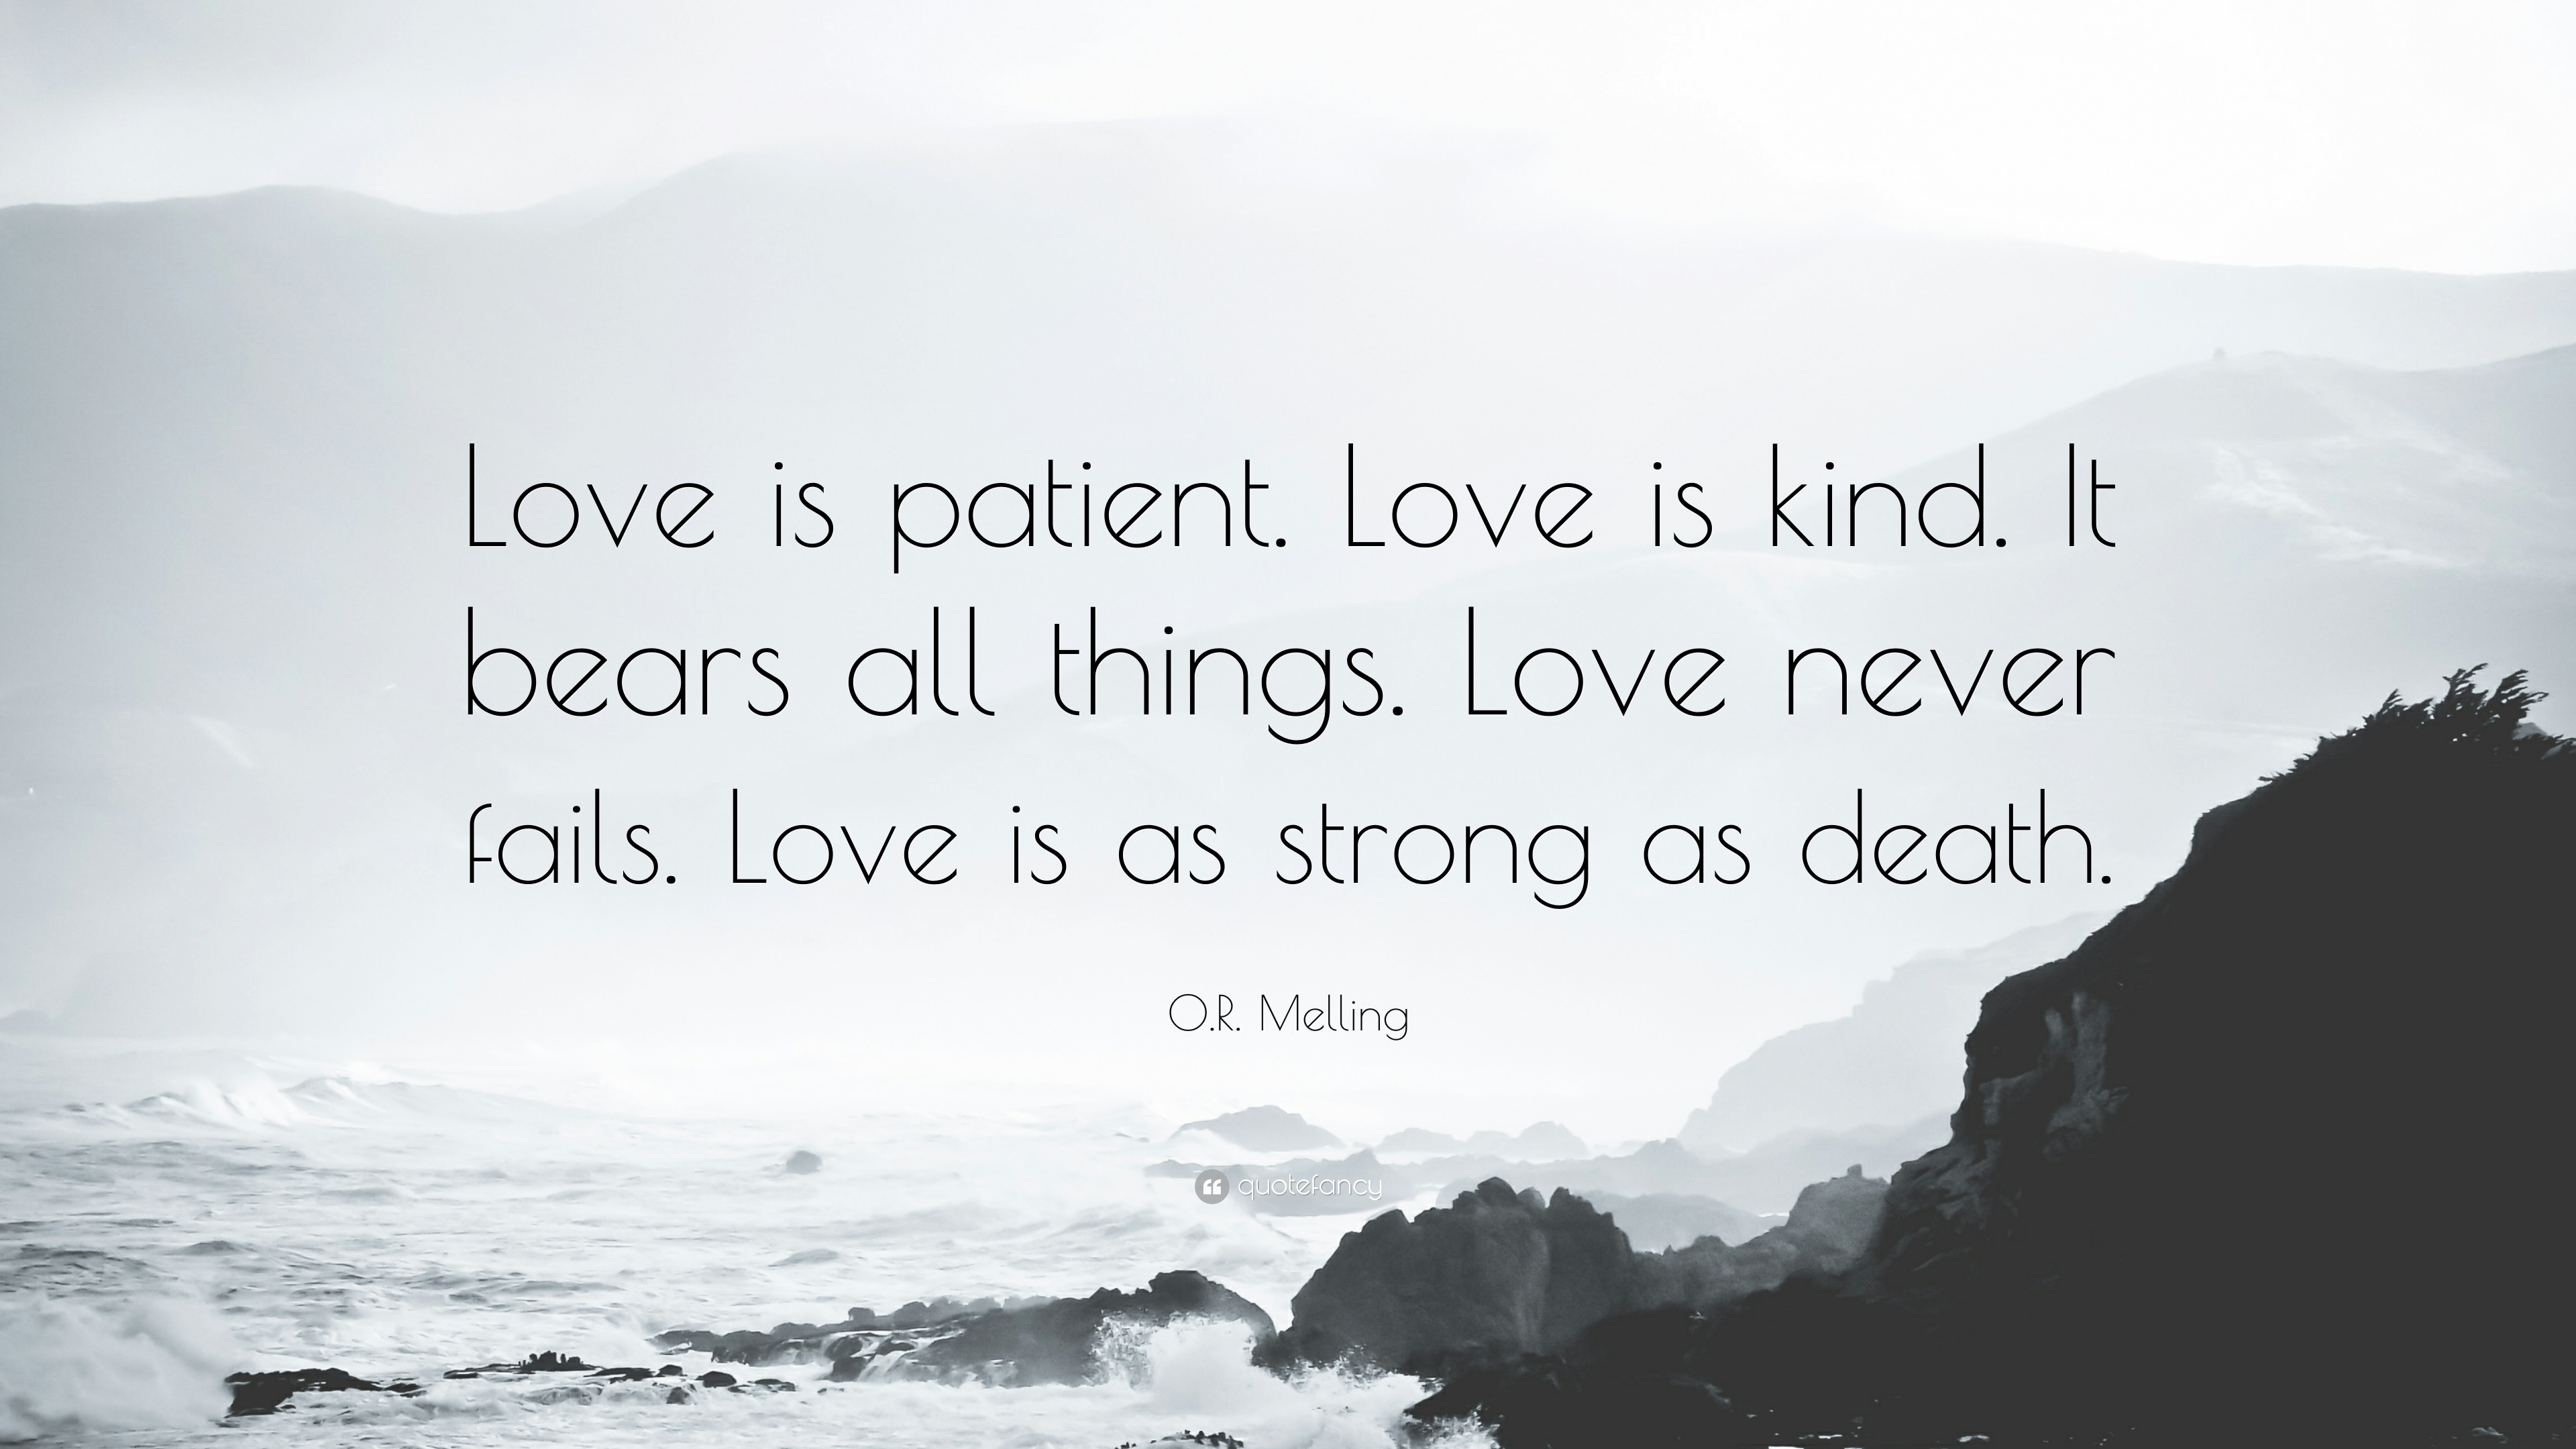 O.R. Melling Quote: U201cLove Is Patient. Love Is Kind. It Bears All